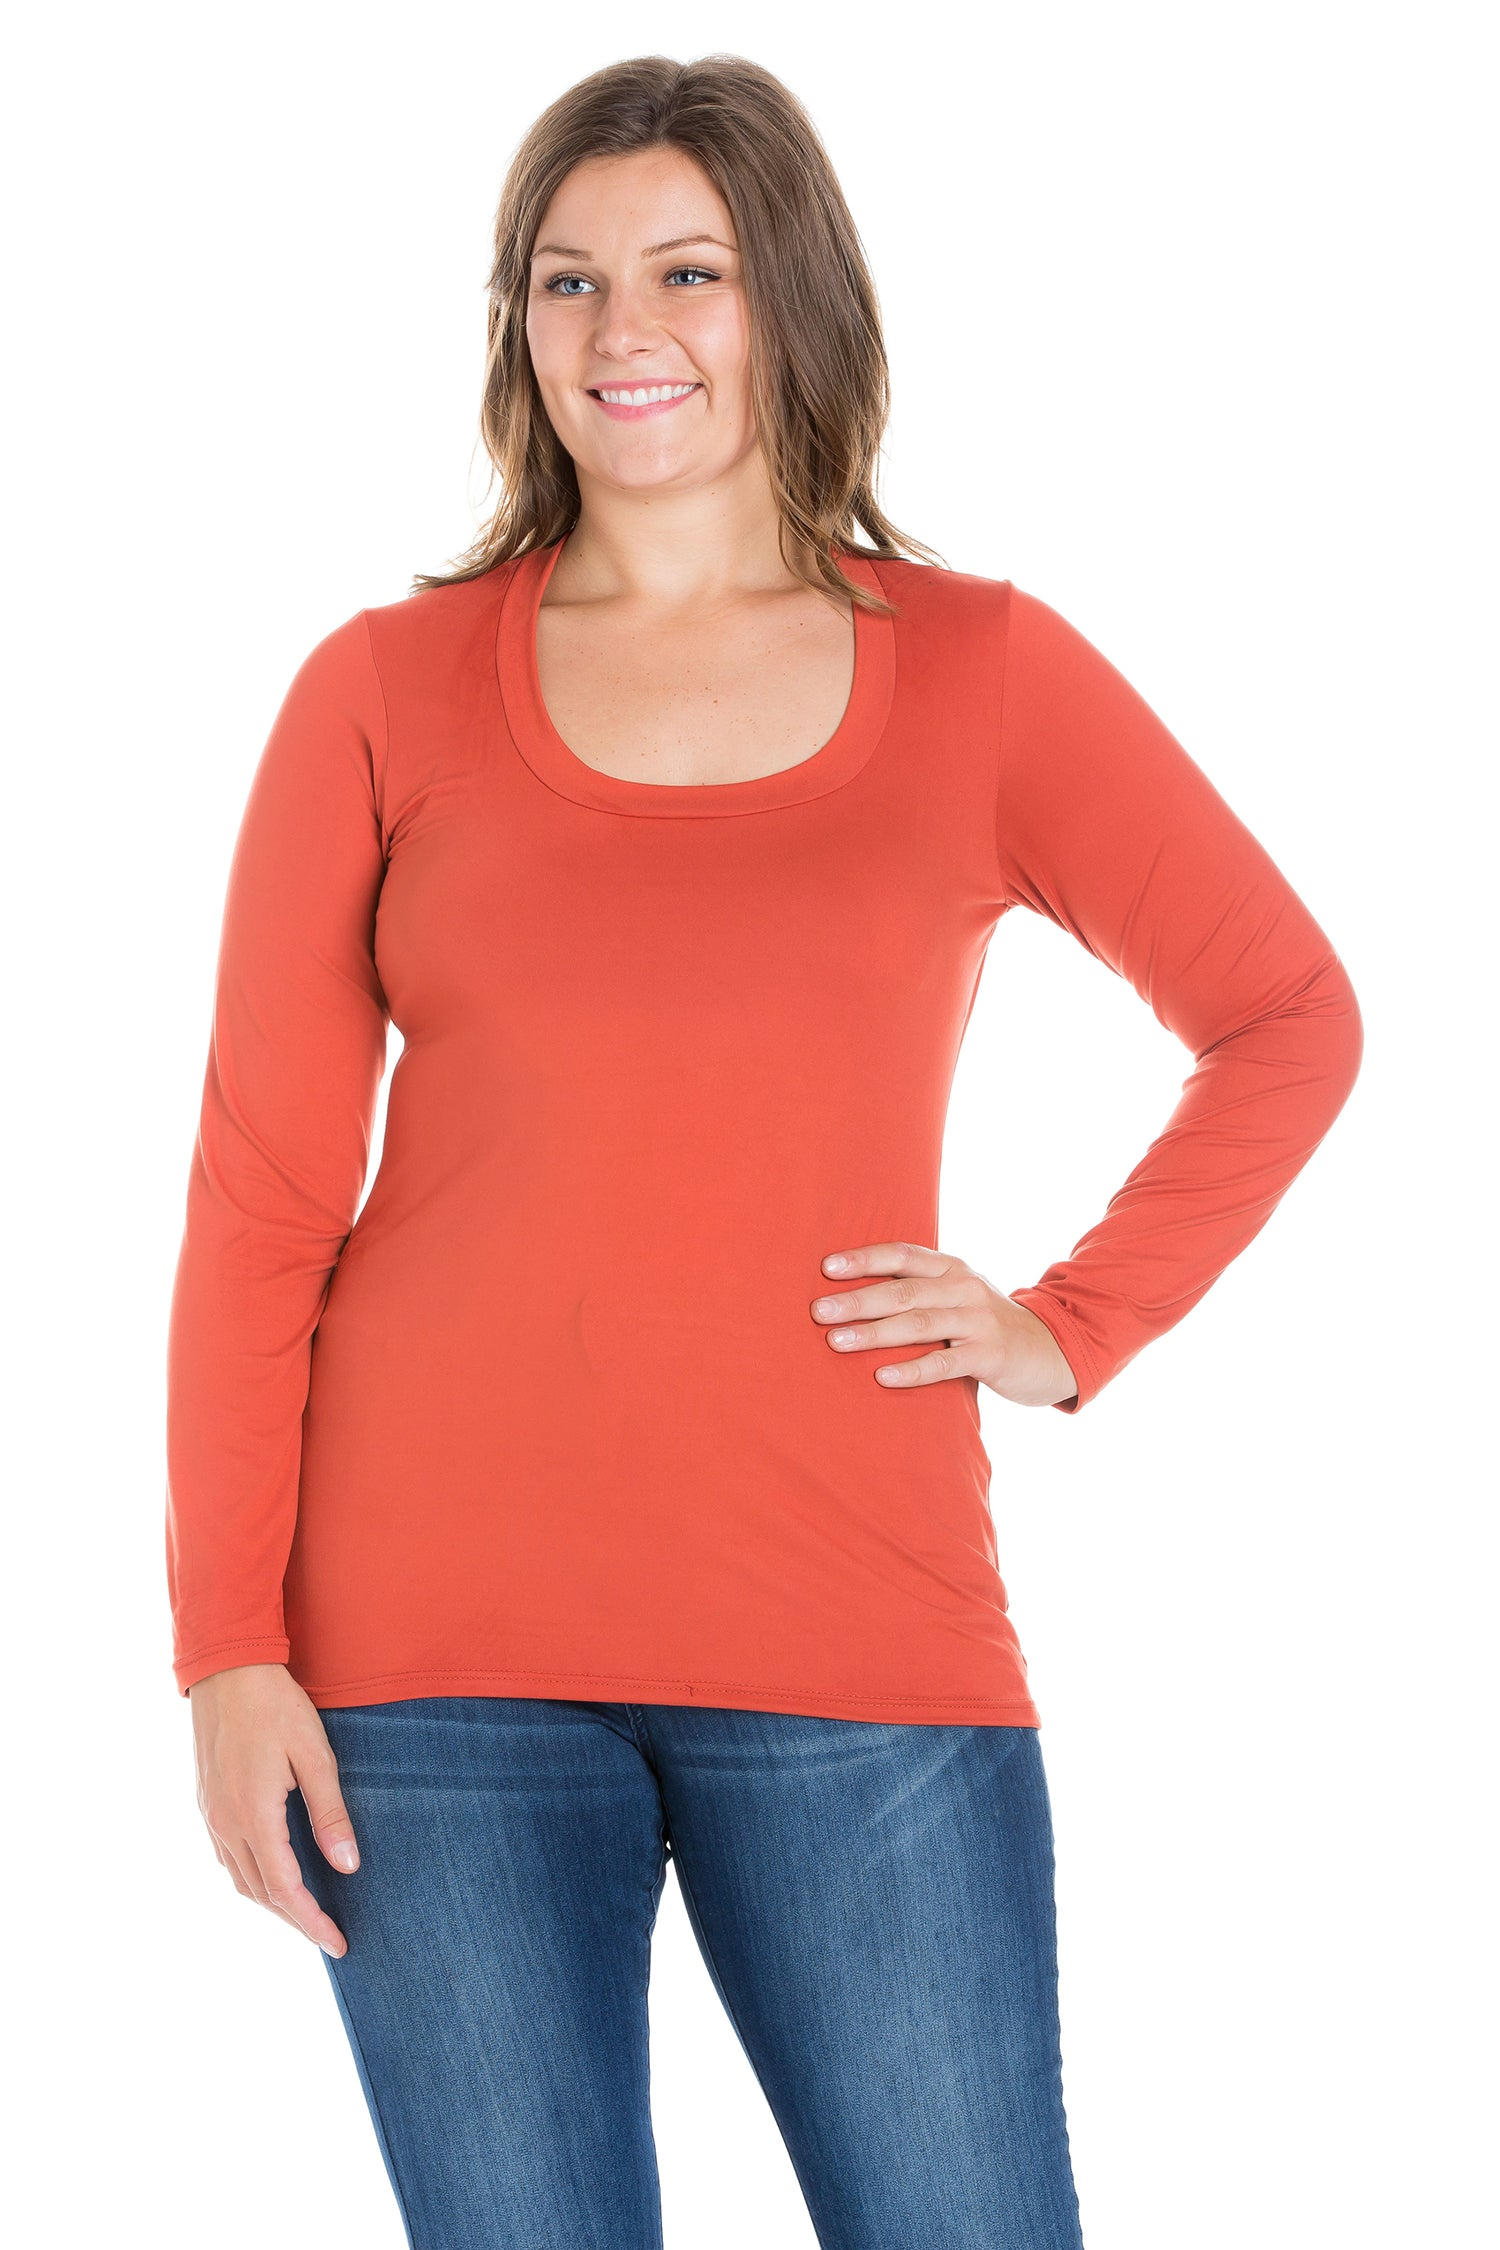 24seven Comfort Apparel Solid Long Sleeve Scoop Neck Plus Size Womens Tee